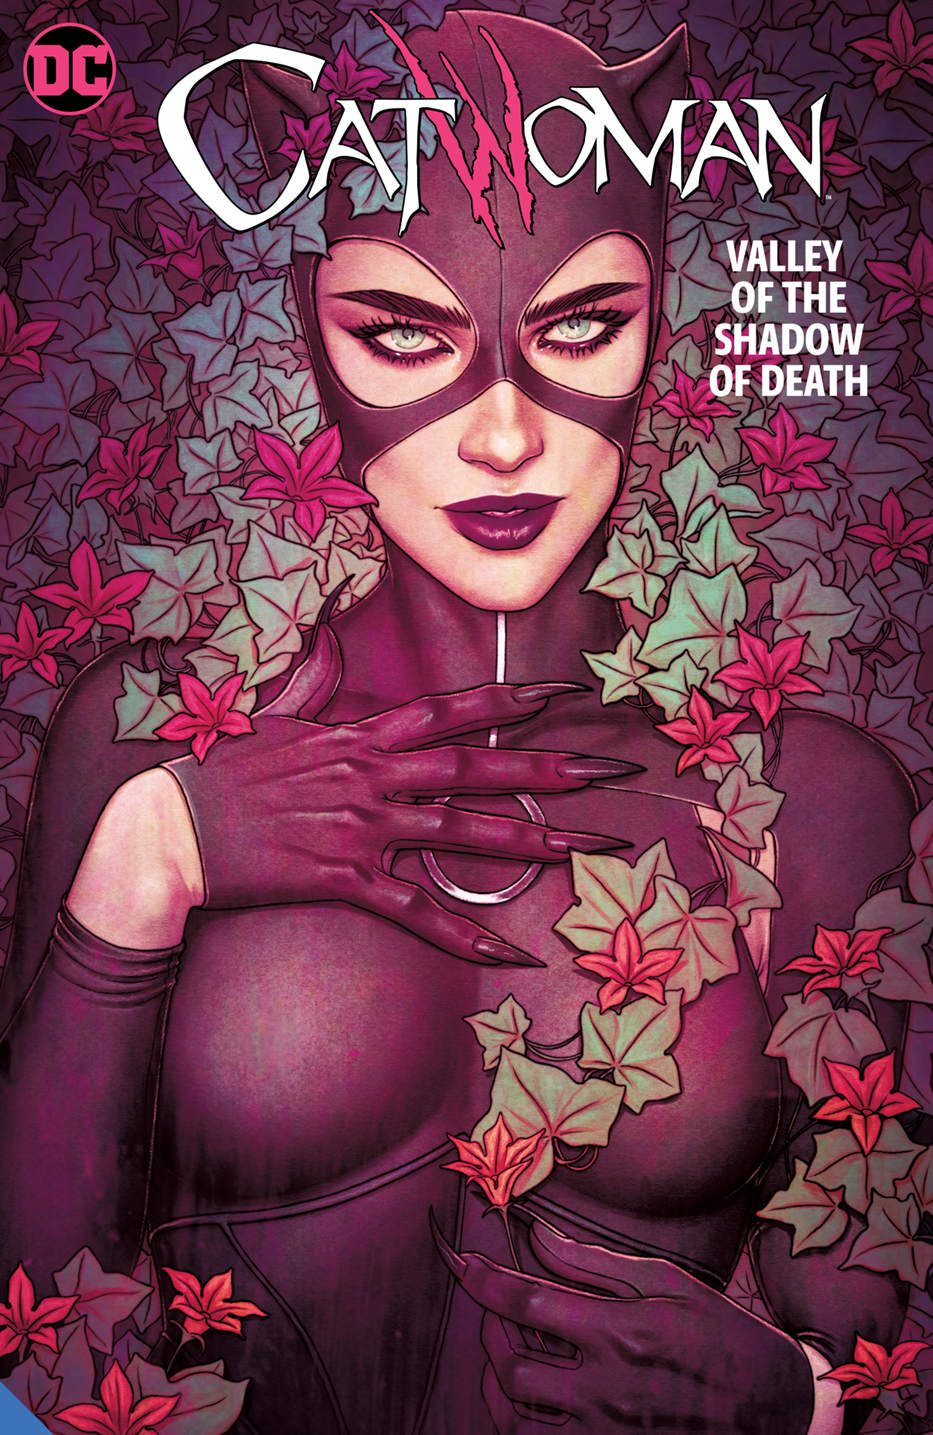 catwoman vol5 adv Recent Comic Cover Updates For The Week Ending 2021 07 23